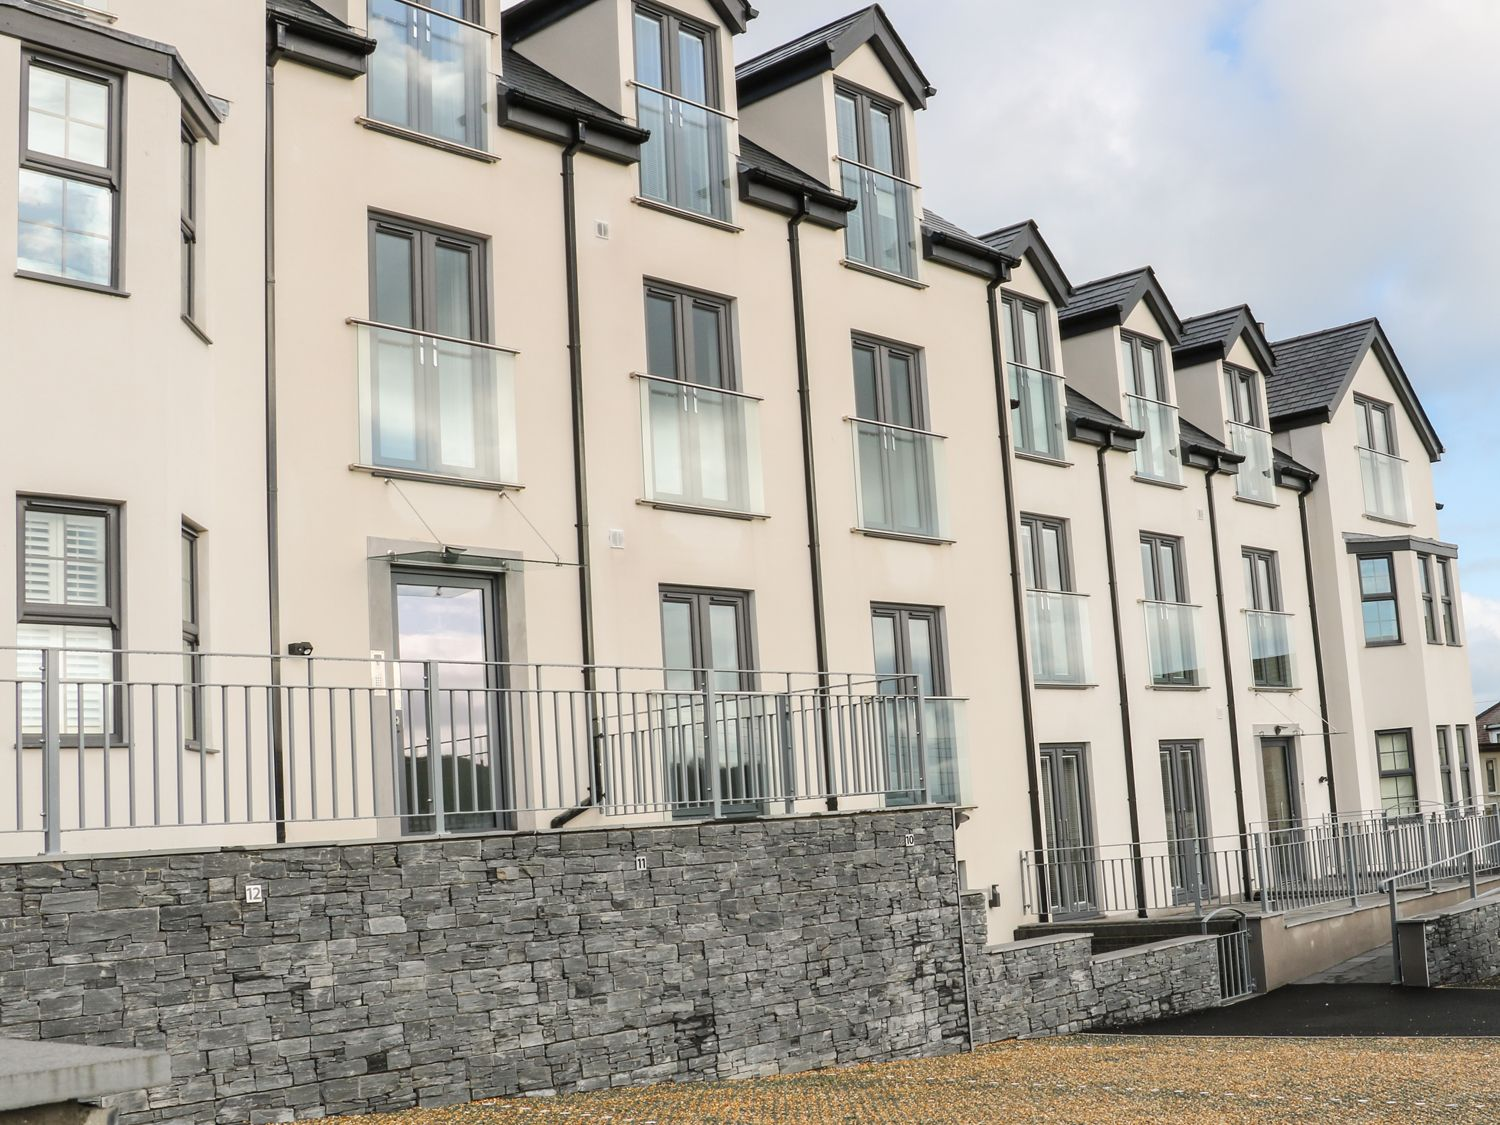 Captain's Quarters - Apartment 2 - Anglesey - 969581 - photo 1